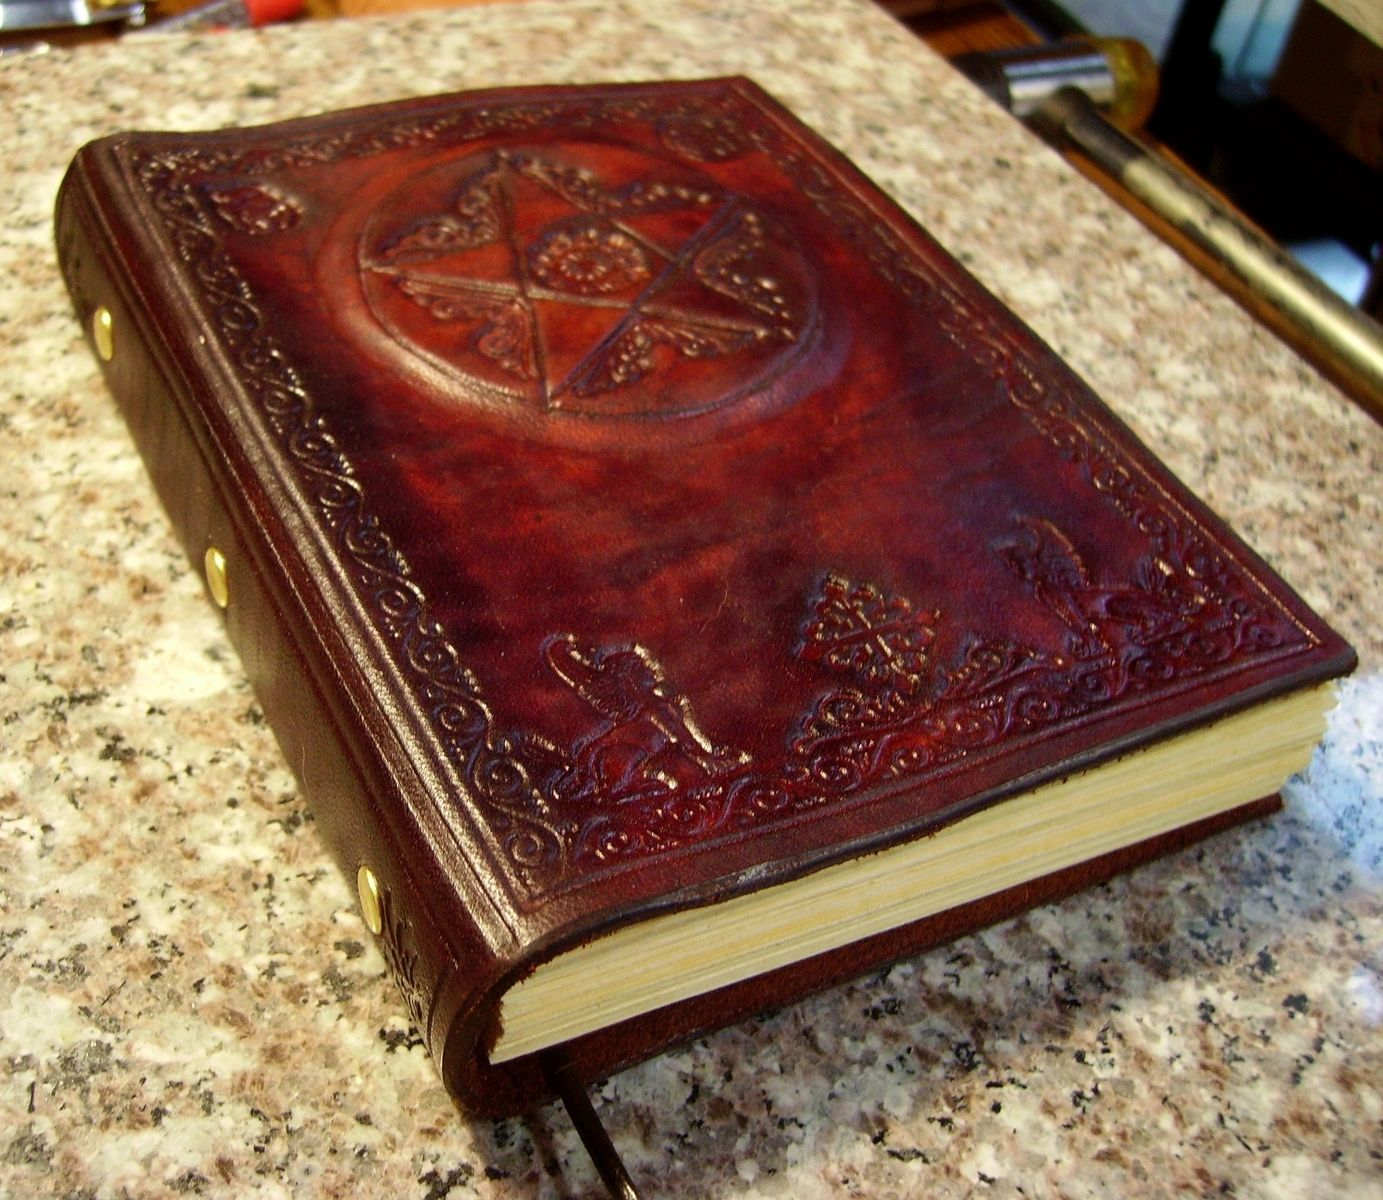 Industrial Style Bedroom Hand Crafted Hand Tooled Leather Pentagram Blank Book